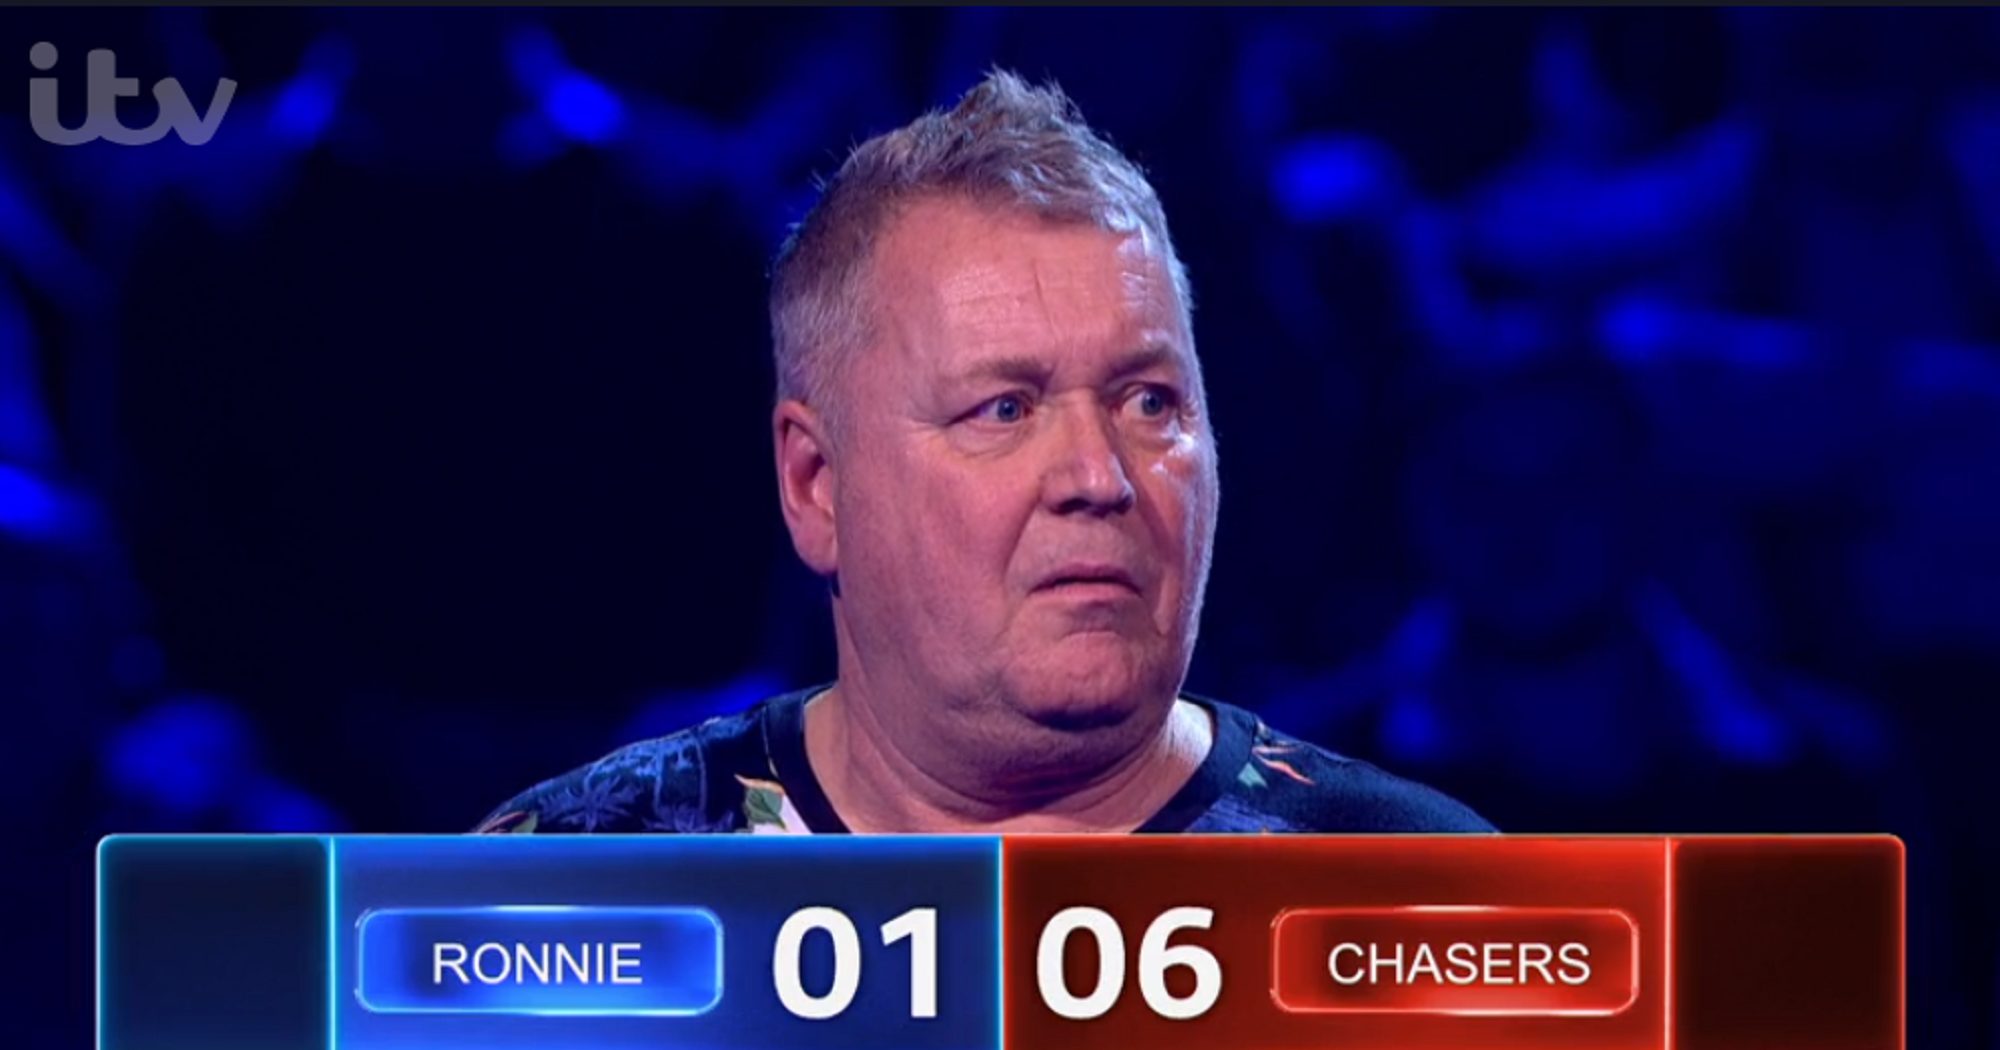 ITV reminds viewers of the rules of Beat The Chasers as they accuse show of shafting contestant Ronnie